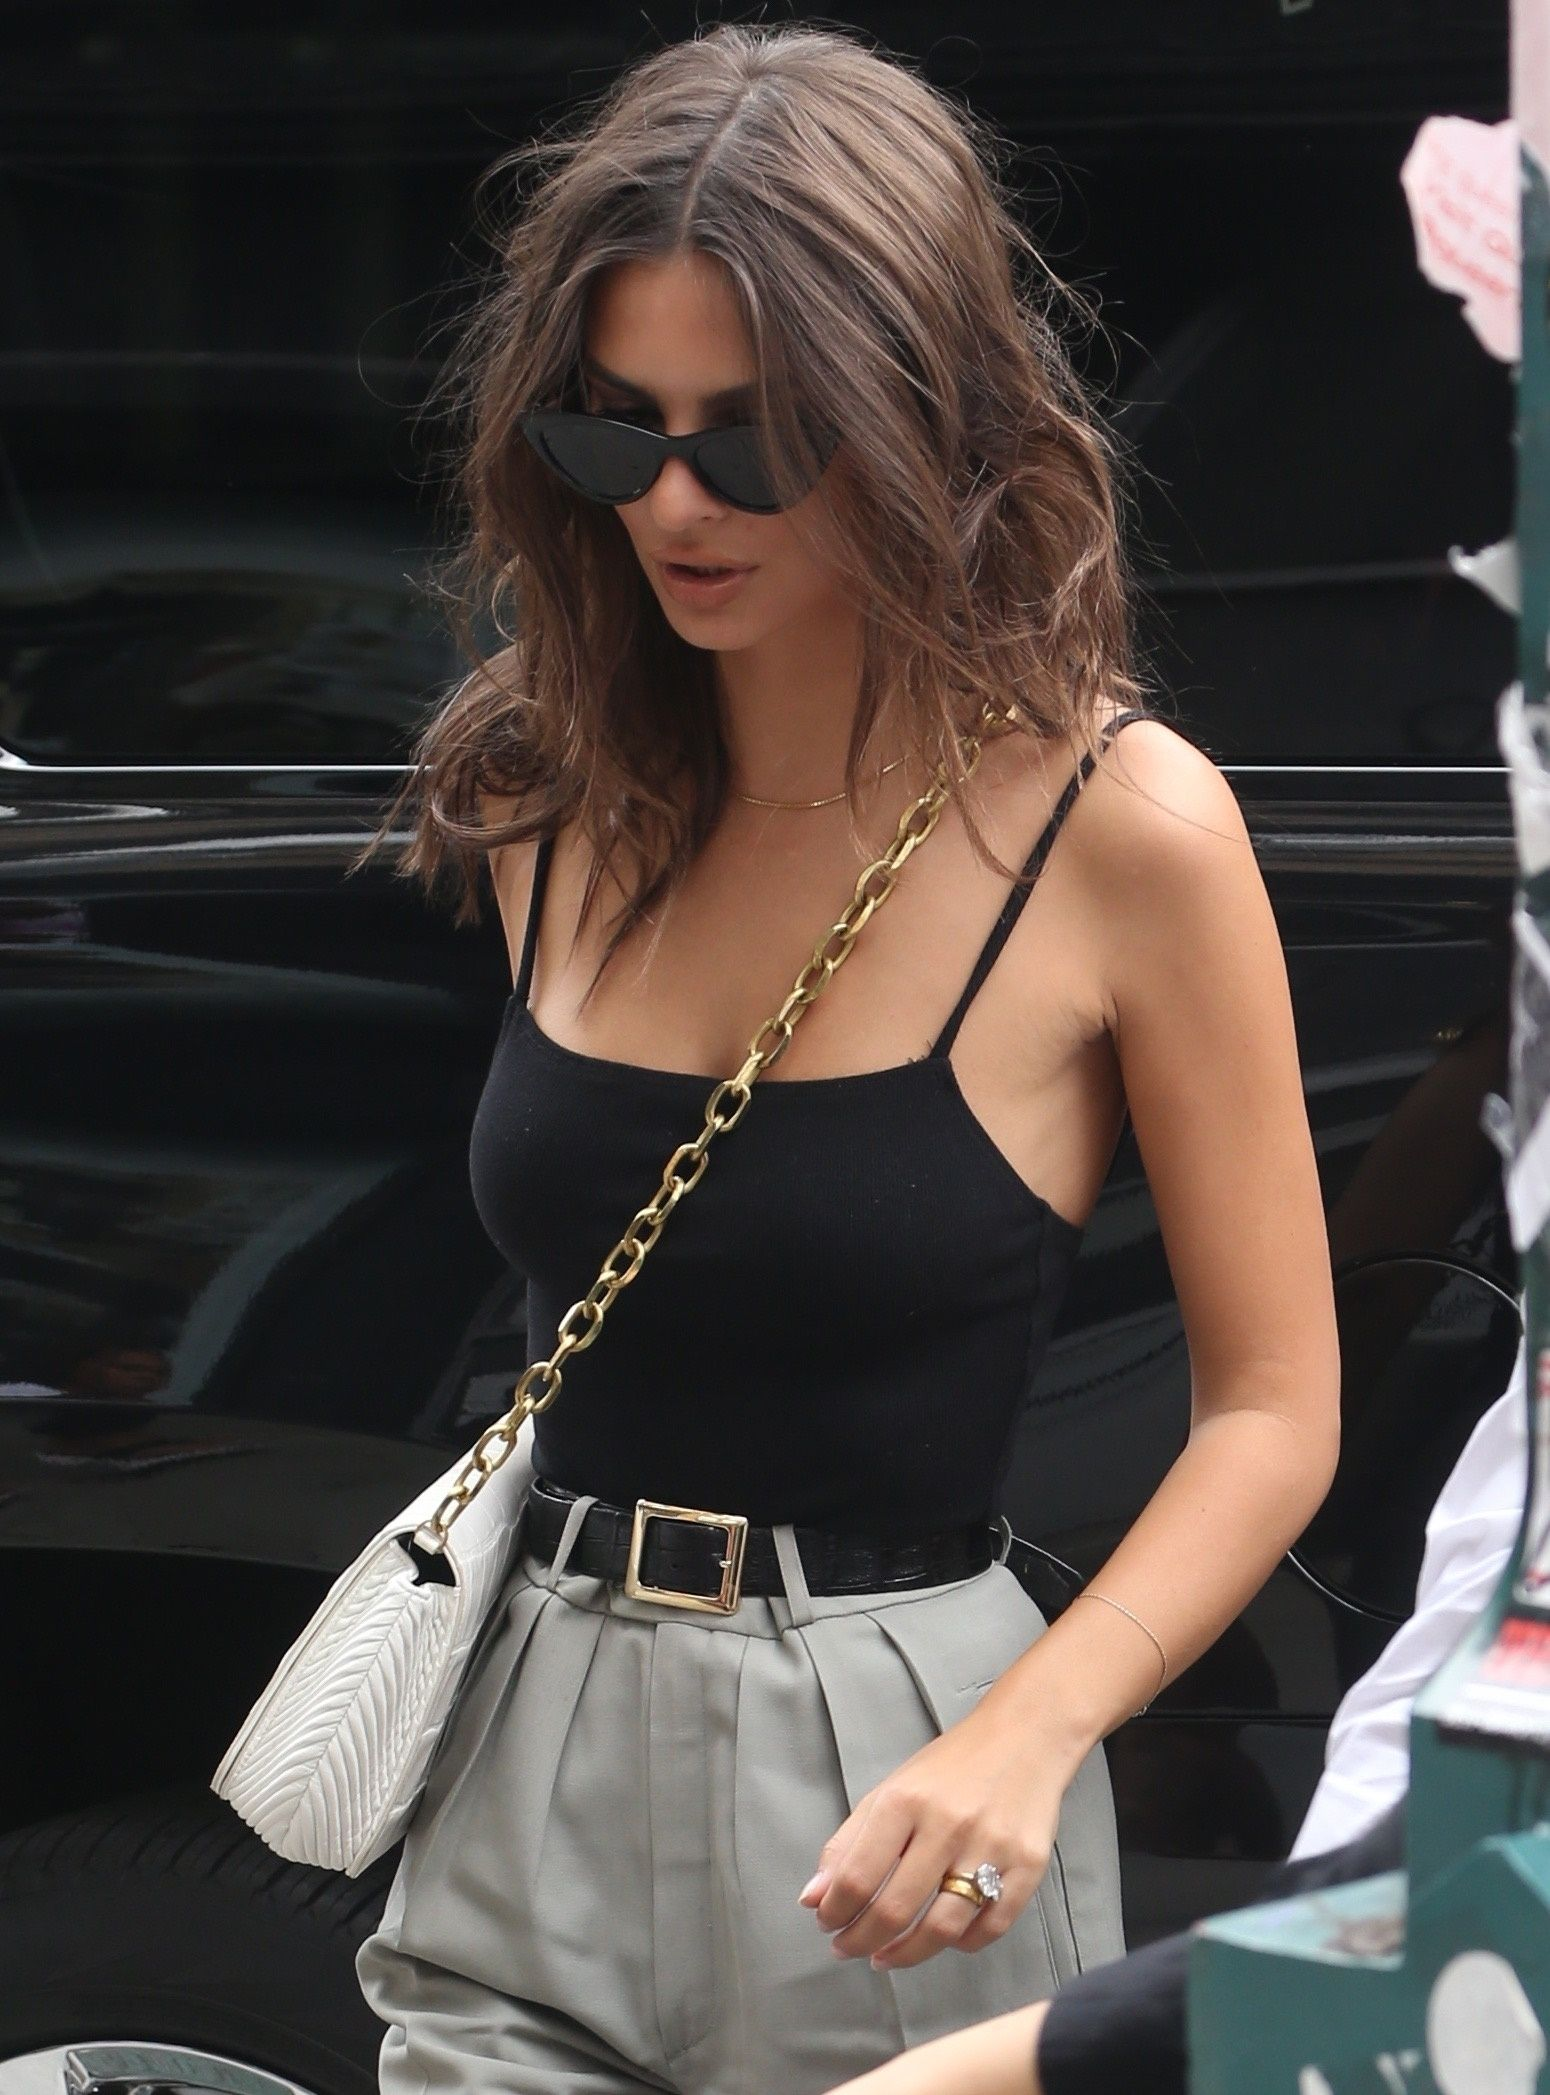 Emily Ratajkowski shows off a messy hair style while out in New York City - Hot Celebrity Photos